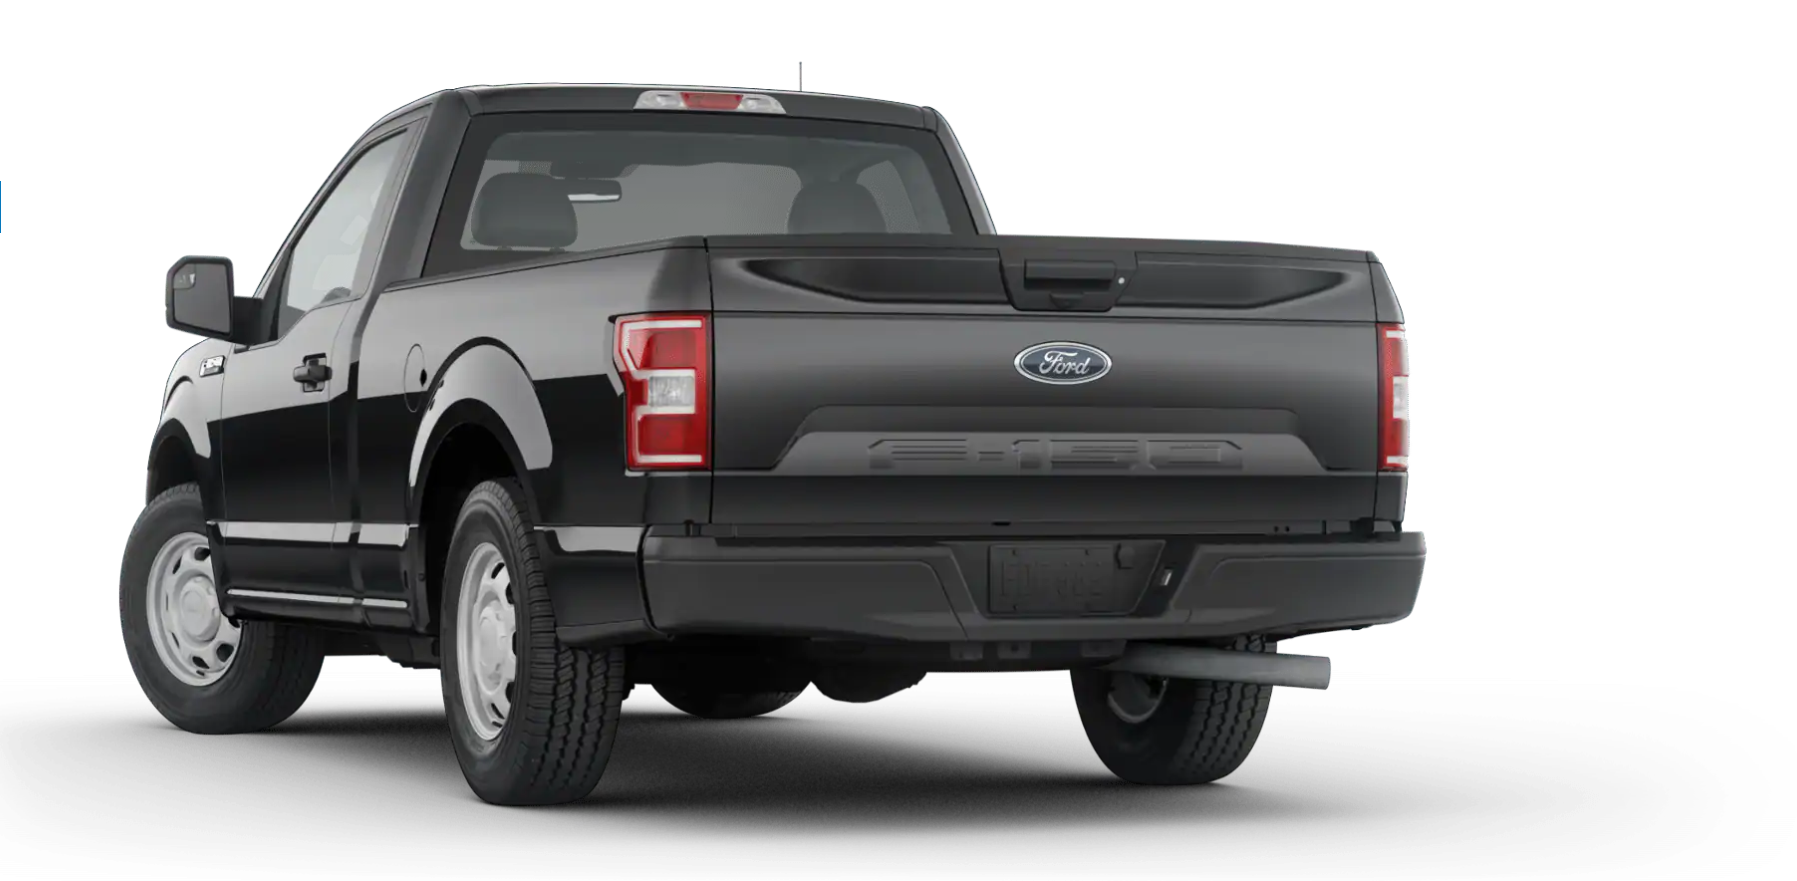 2020 Ford F-150 XL Rear View Black Exterior Picture.png